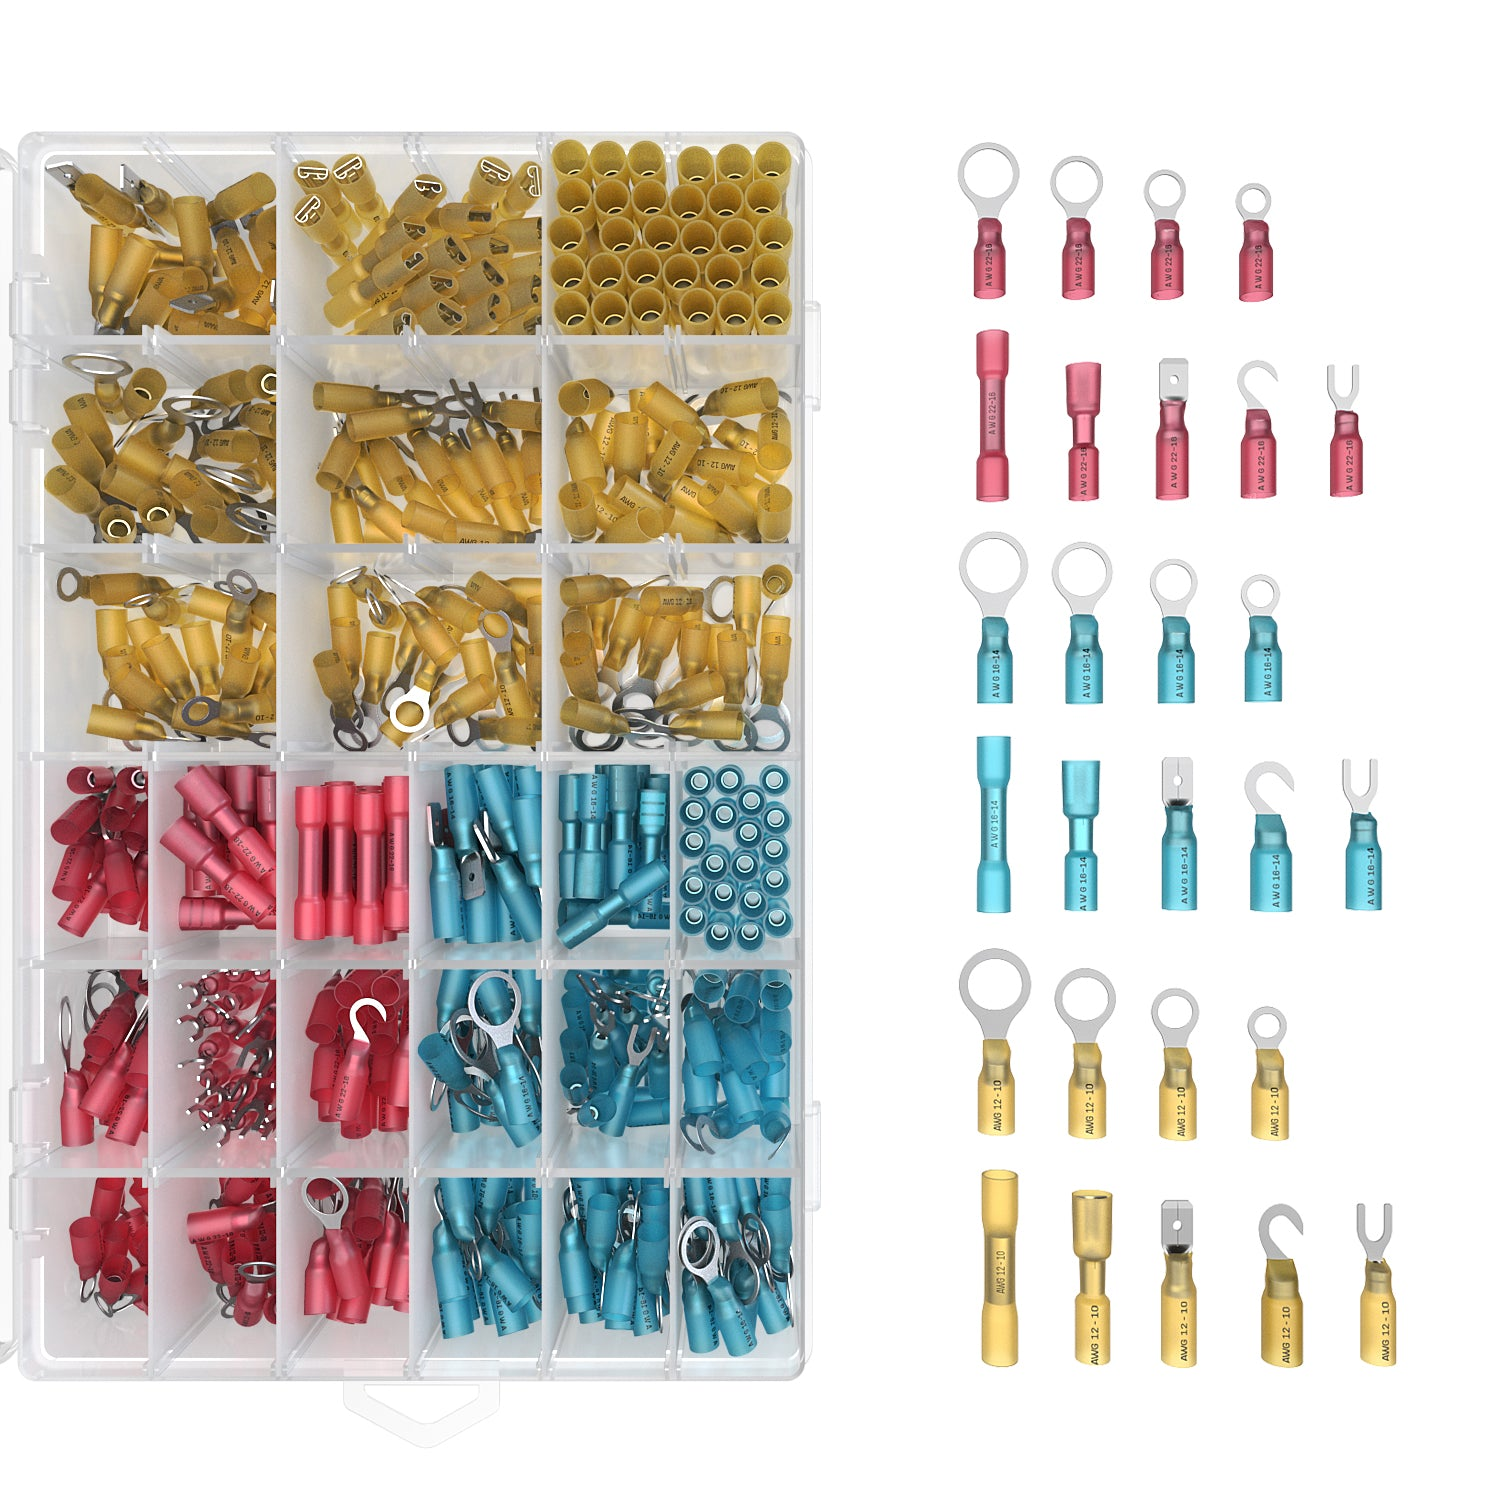 570 Piece Heat Shrink Wire Connector Kit